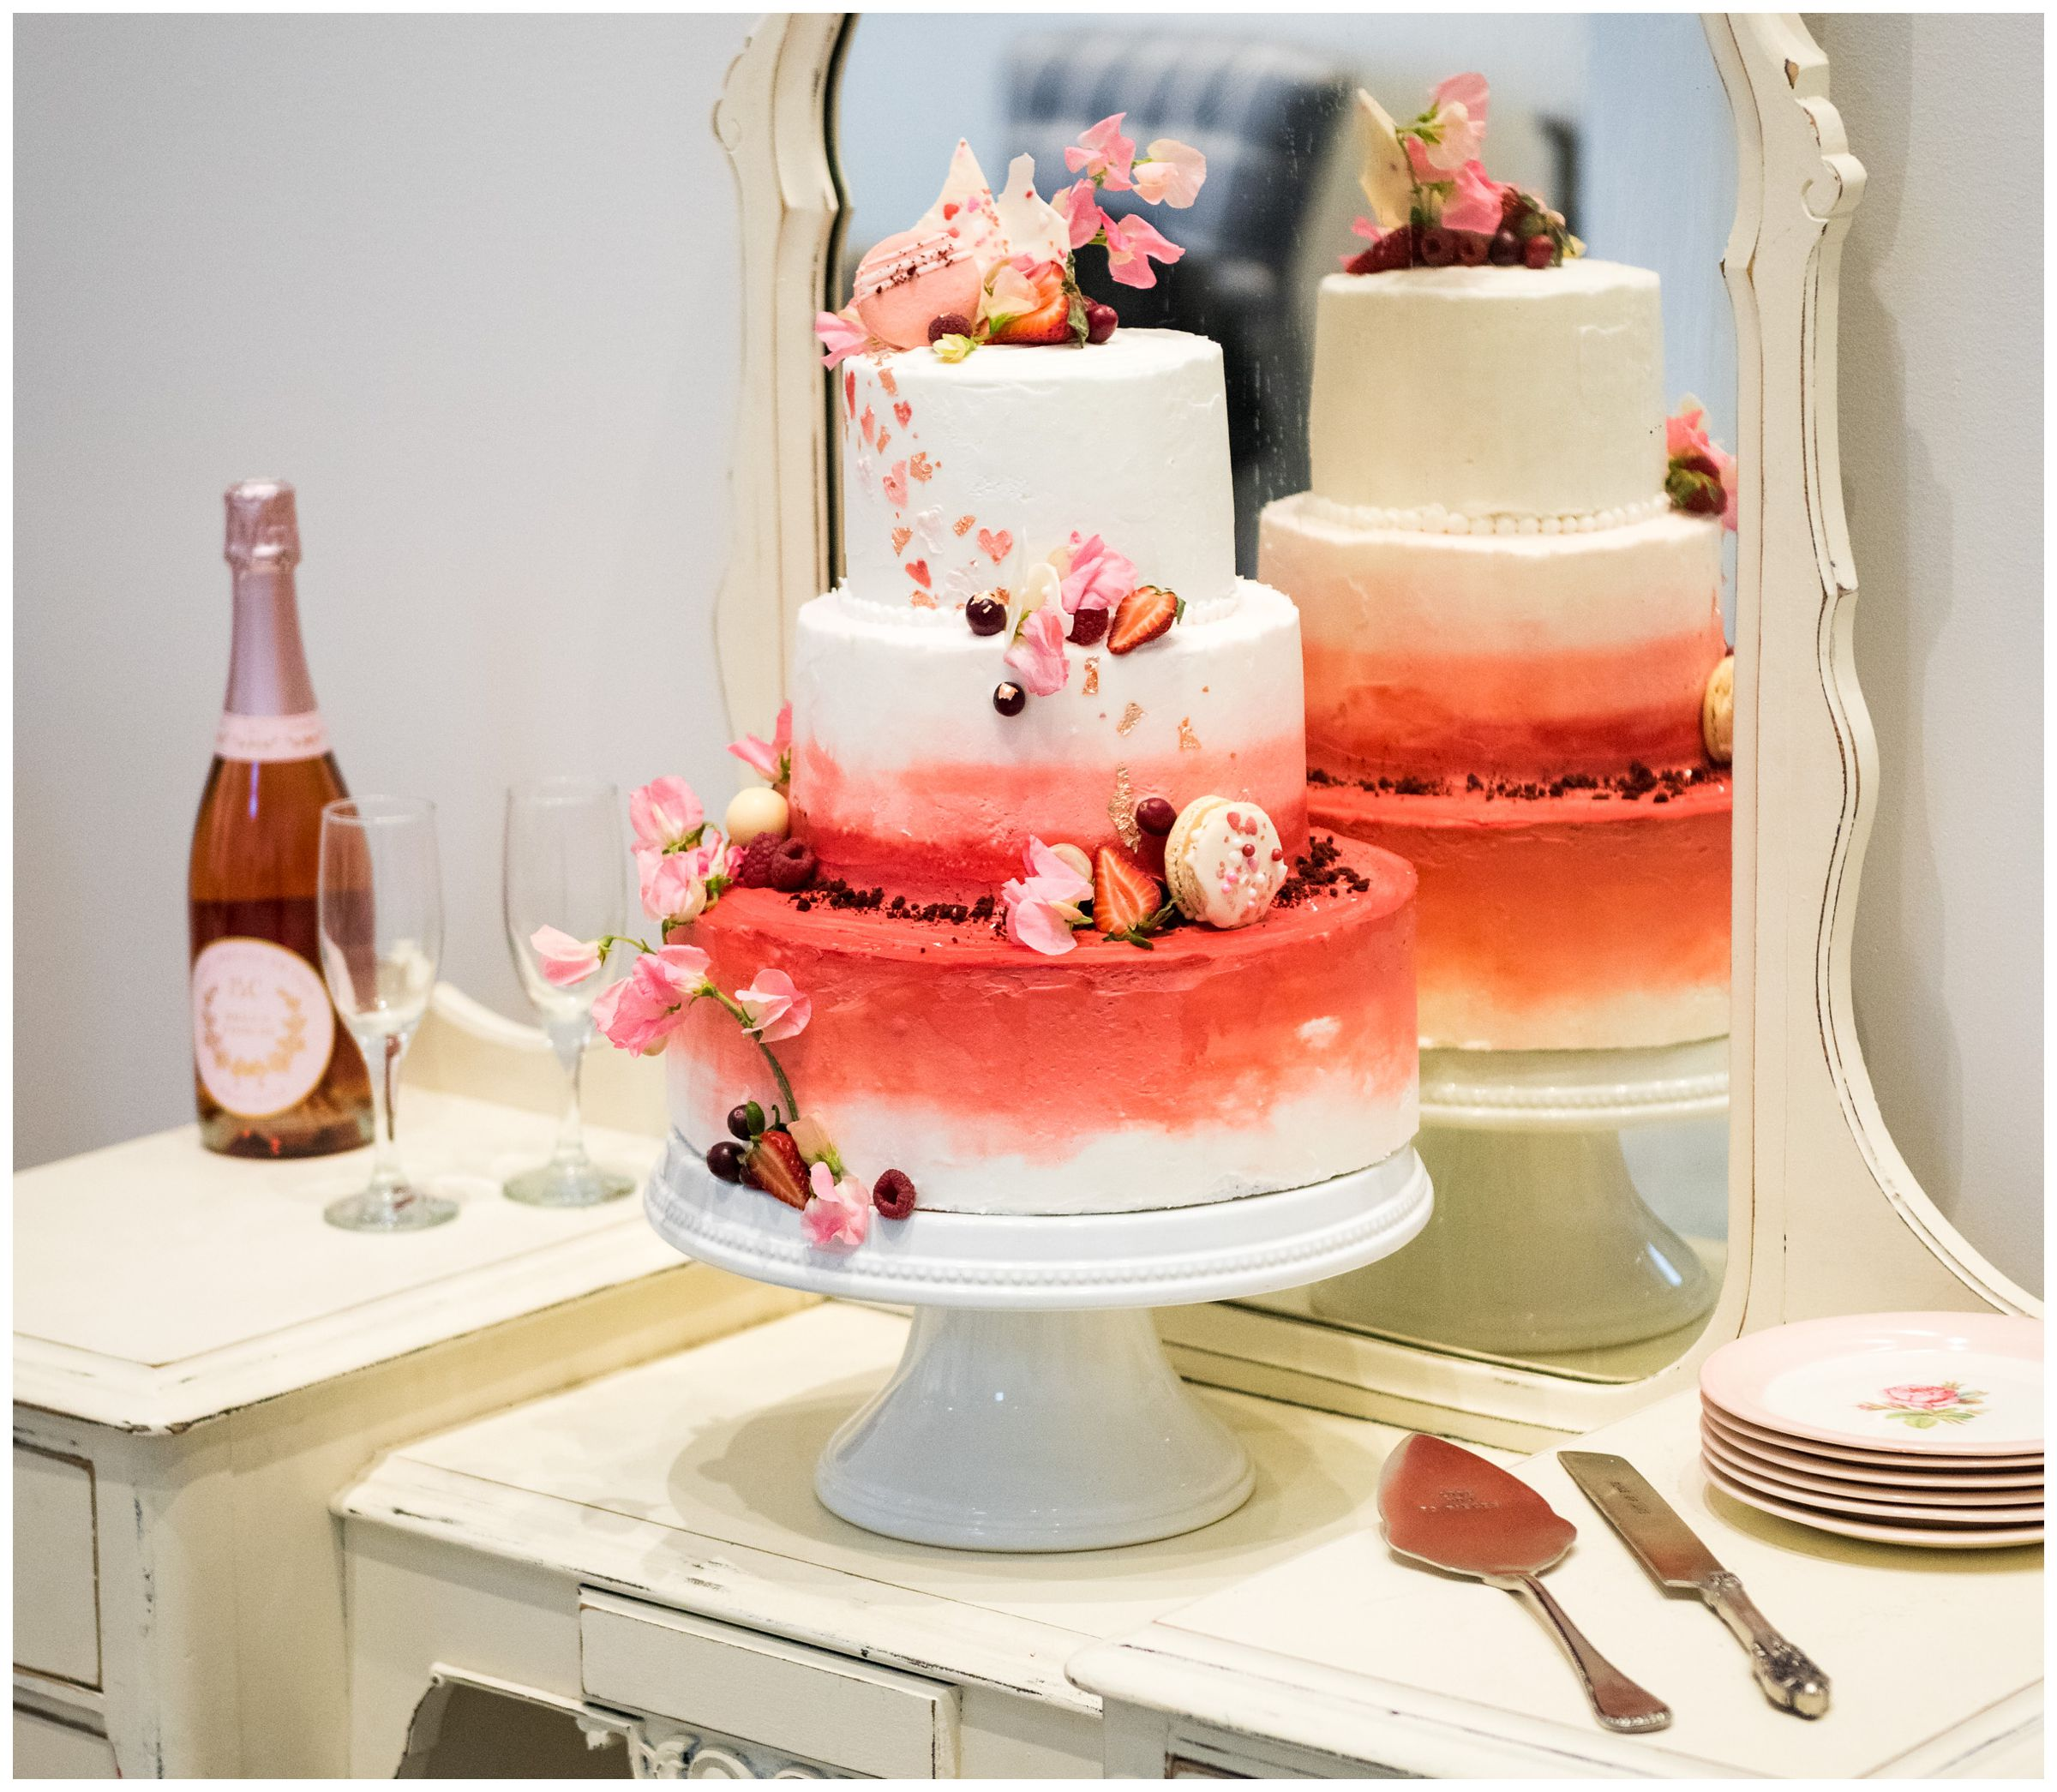 wedding cake with pink macaroons and fruit by Ovenbird Baking in Columbus, Ohio